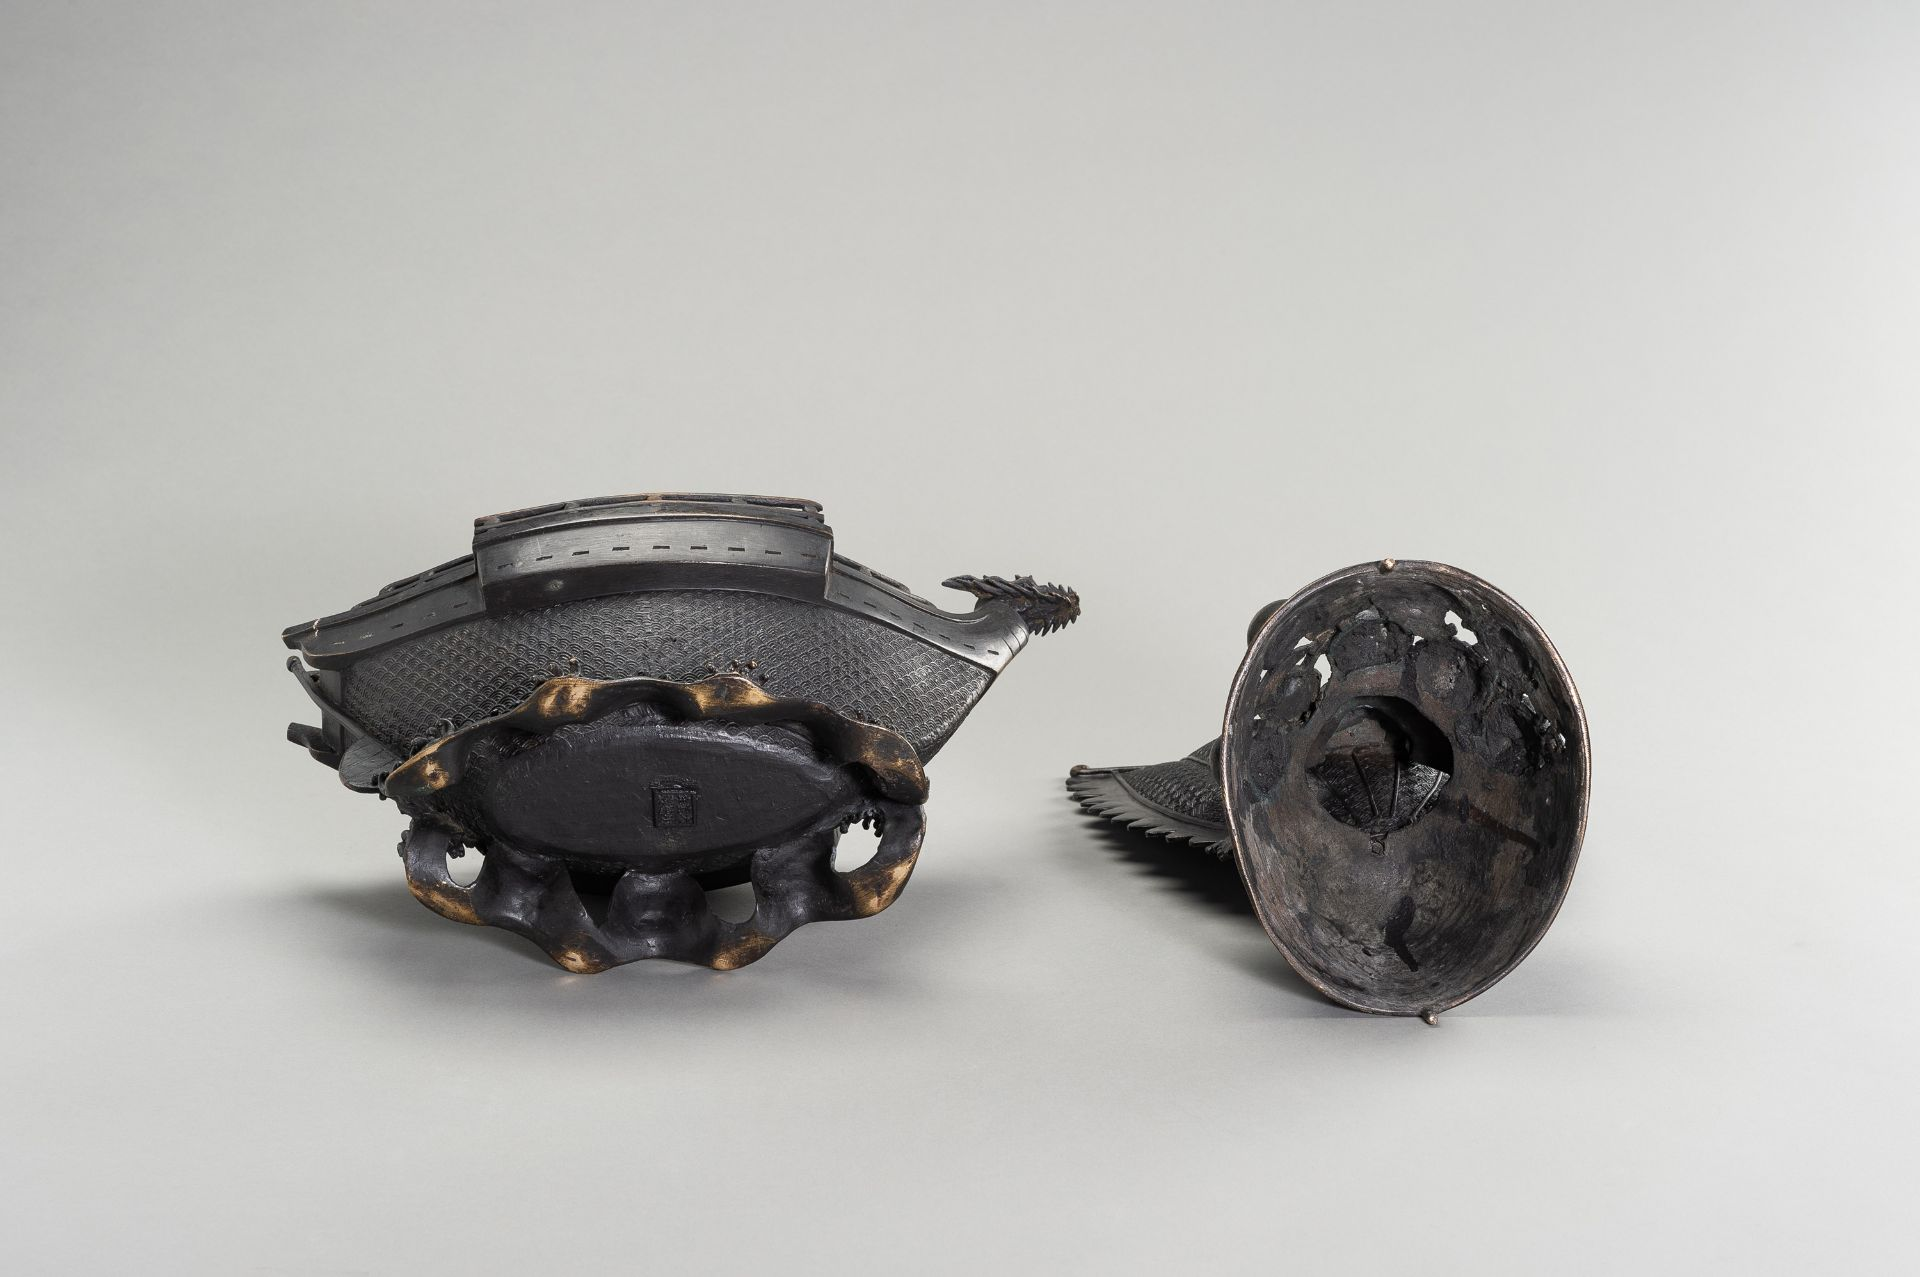 A LARGE BRONZE CENSER IN THE SHAPE OF A TREASURE SHIP - Image 9 of 13